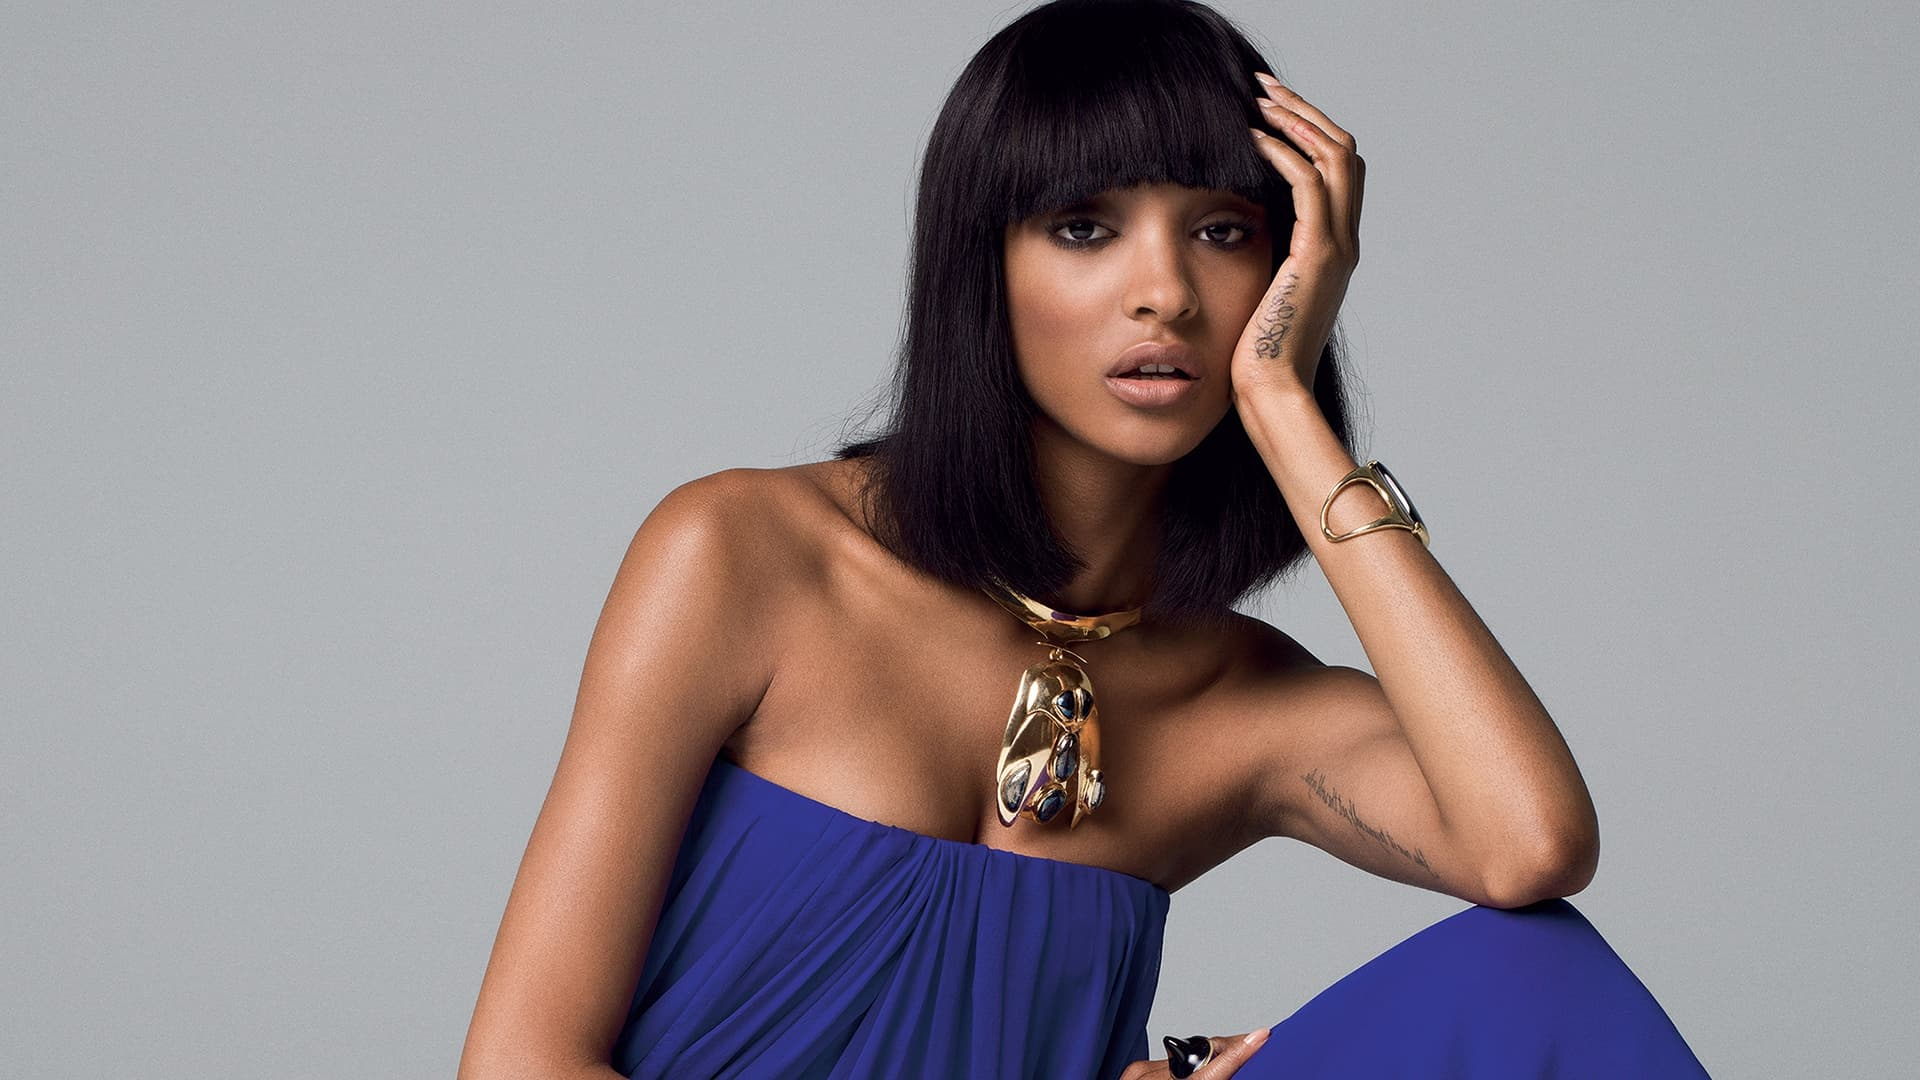 Jourdan Dunn fashion HD Pics, haircut